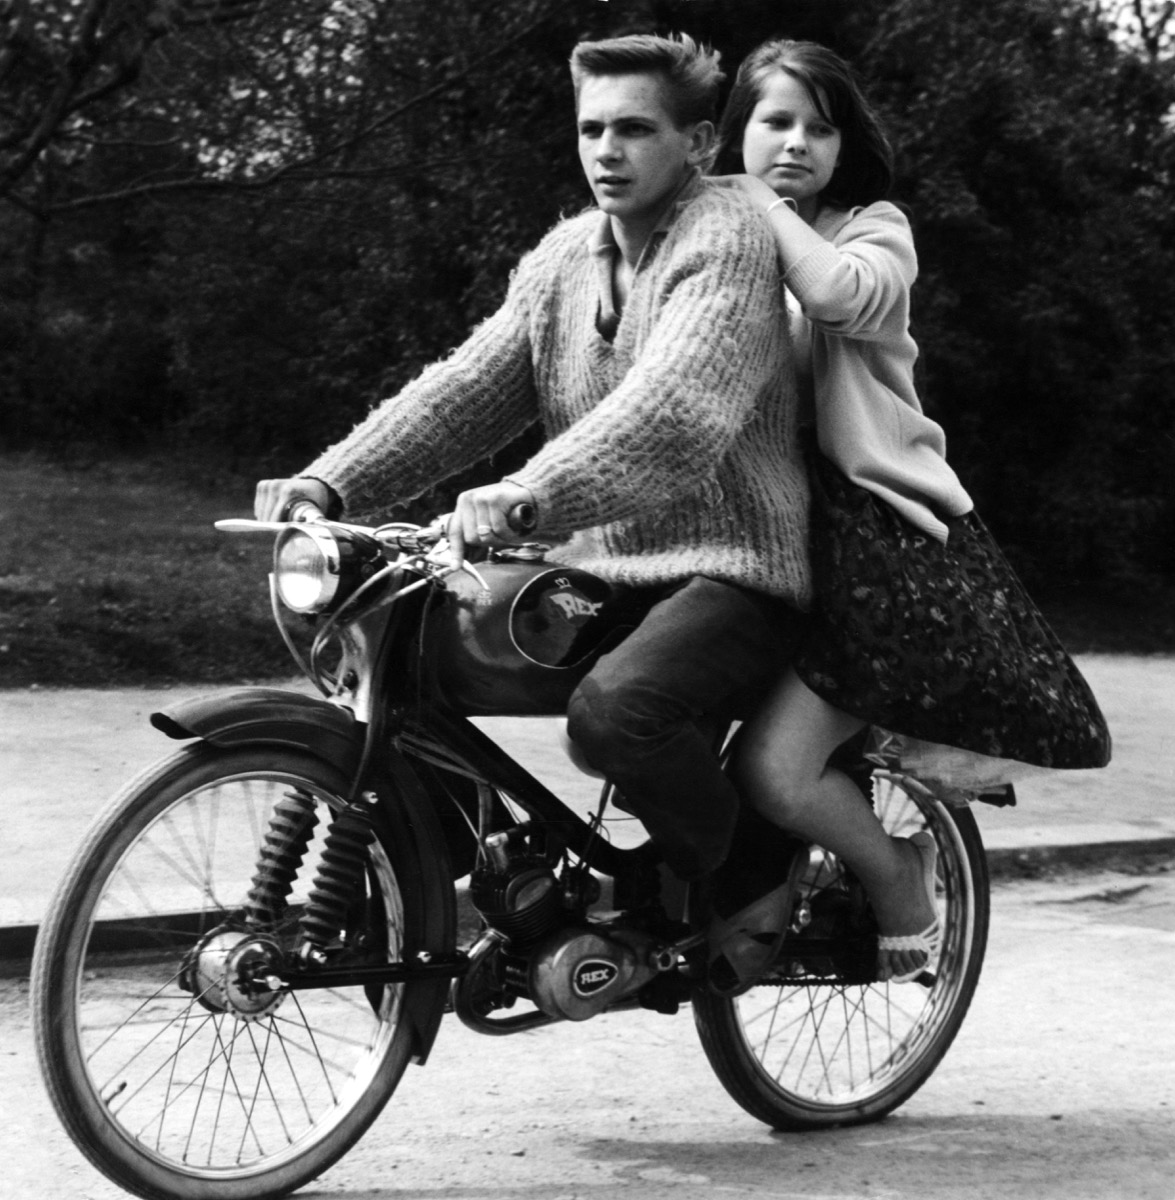 young couple on autocycle by Rex, 1950s